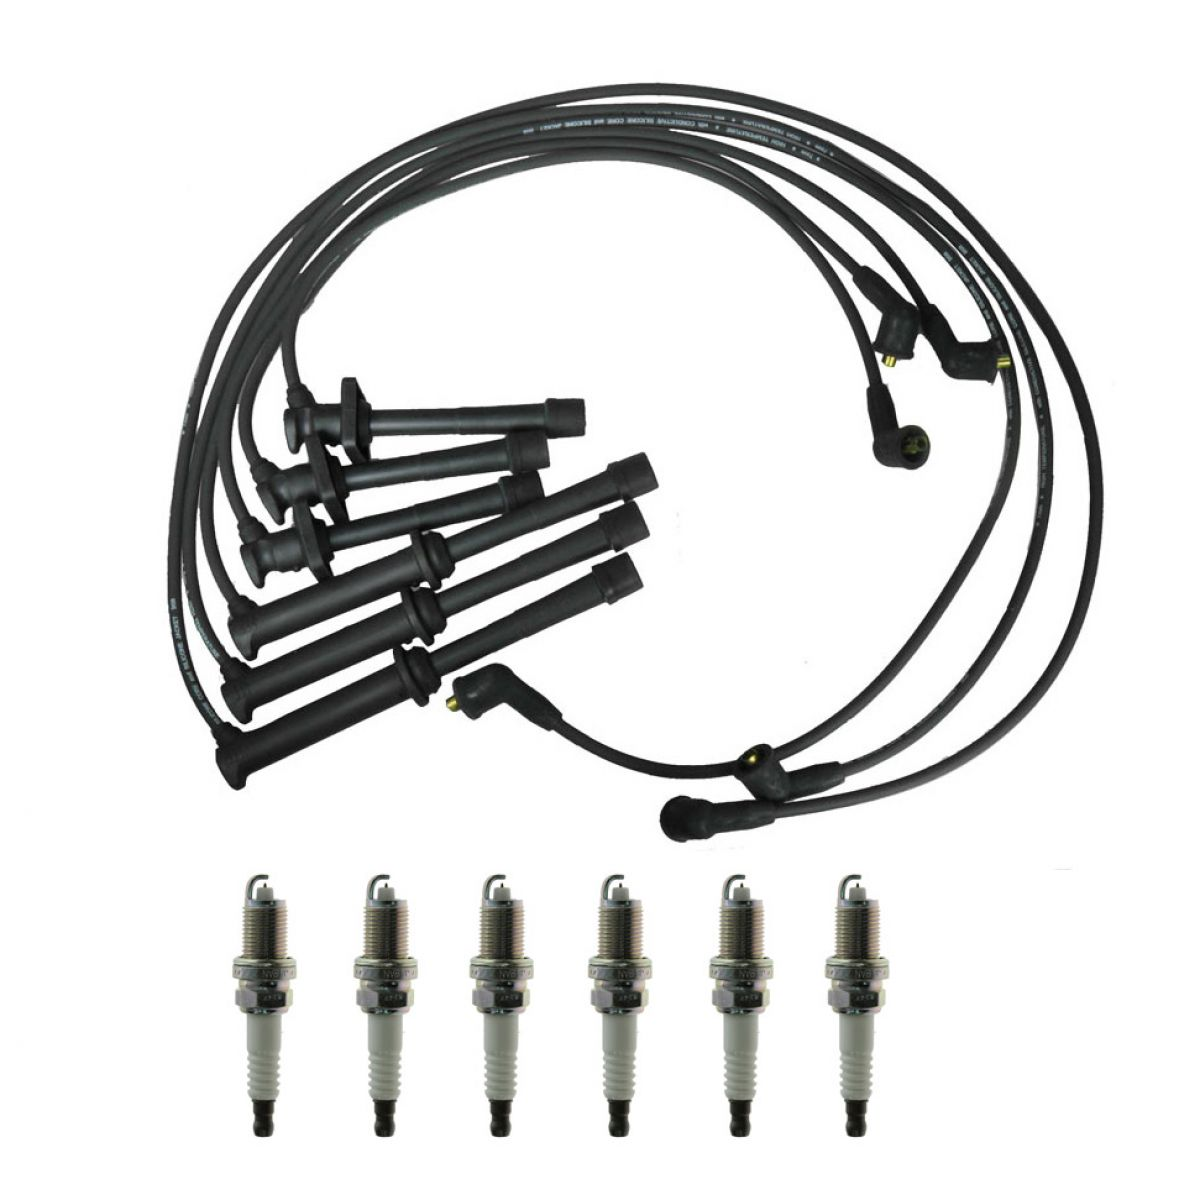 Spark Plugs & Ignition Wires Kit for 93-95 Mazda 626 MX6